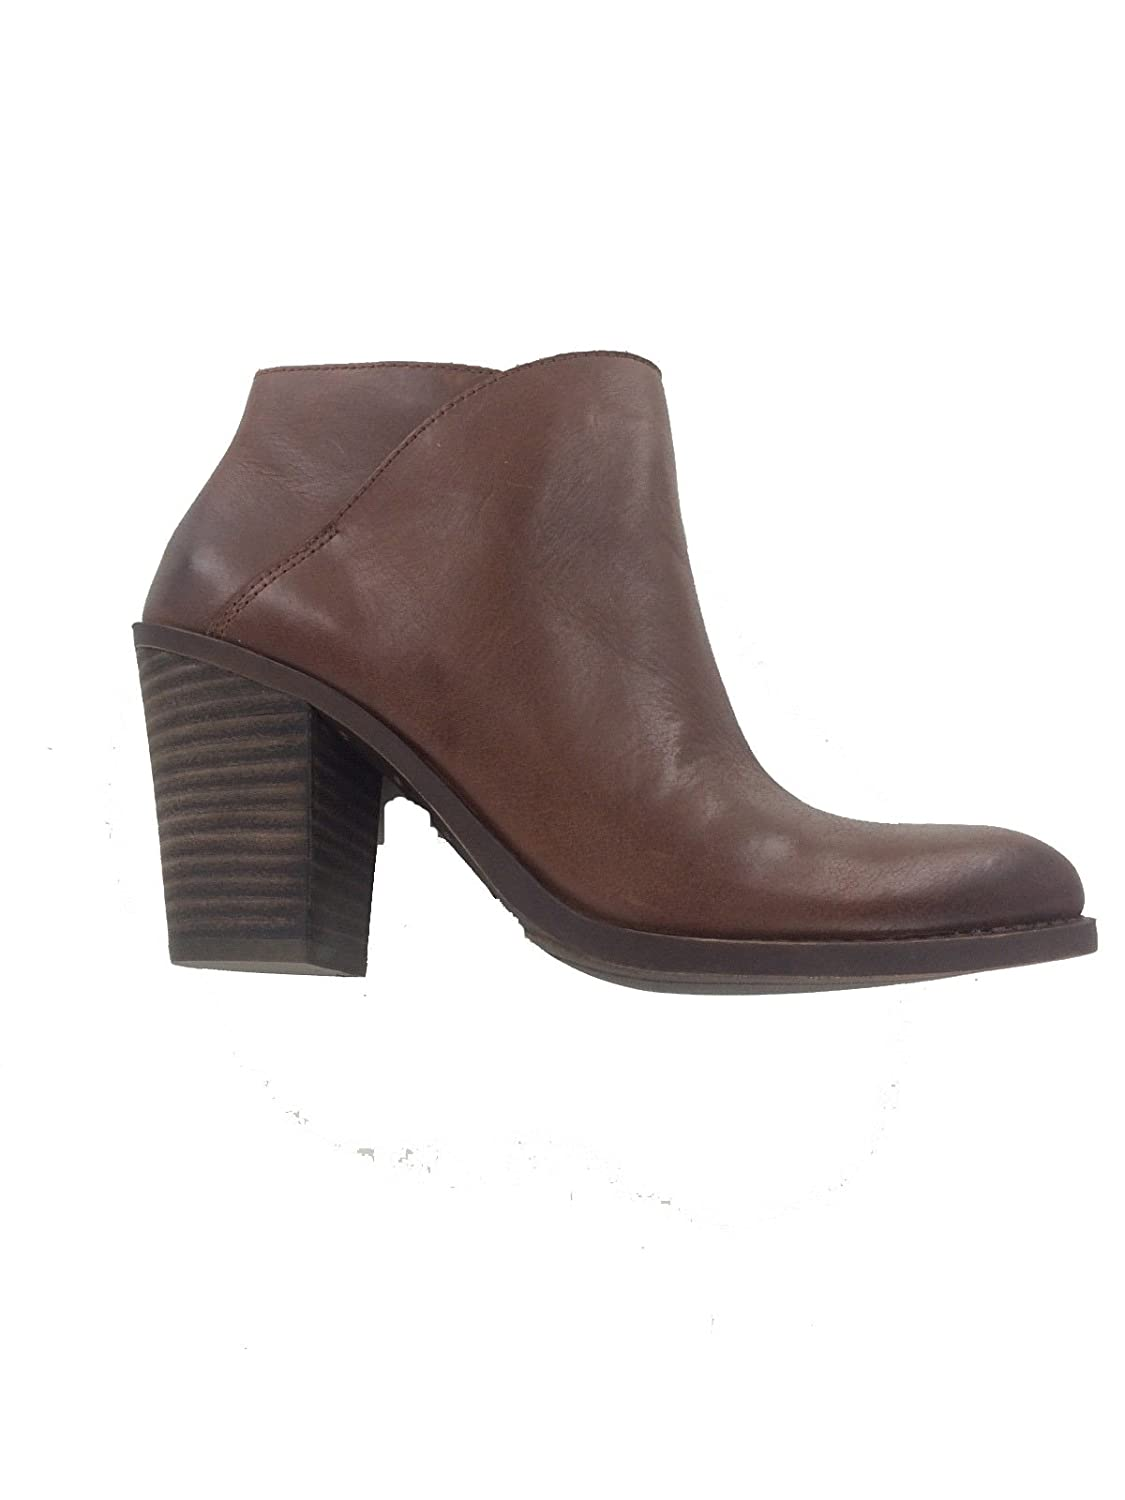 Lucky Brand Women's Eesa Ankle US|Chipmunk Bootie B01CGWWCNW 8.5 B(M) US|Chipmunk Ankle 635fe7